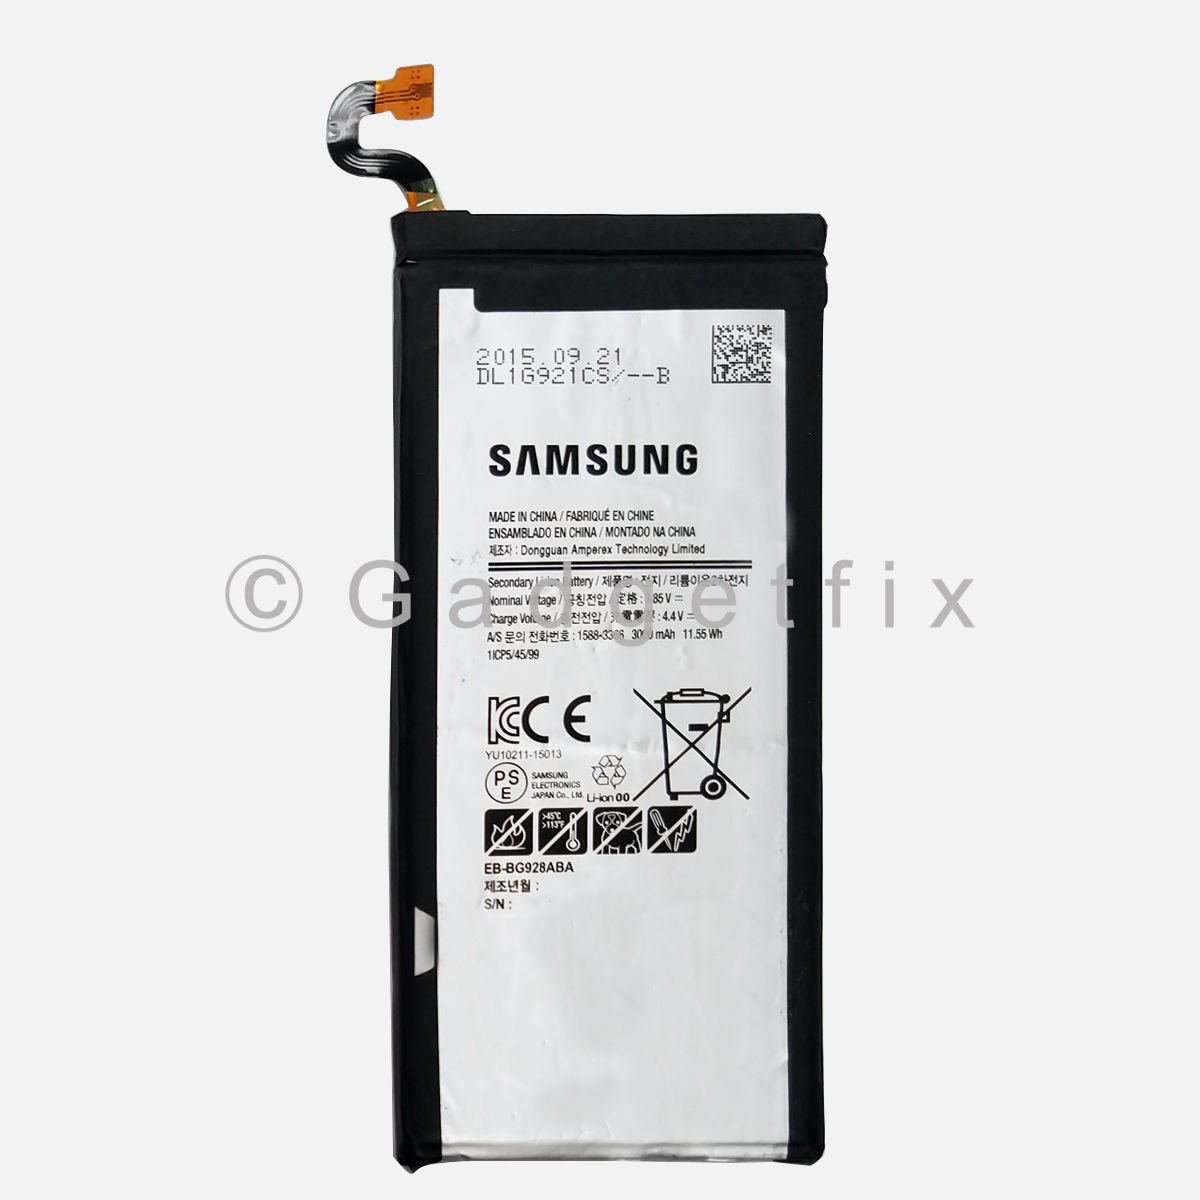 Samsung Galaxy S6 Edge Plus G928A G928T G928V G928P EB-BG928ABA 3000 mAh Internal Battery